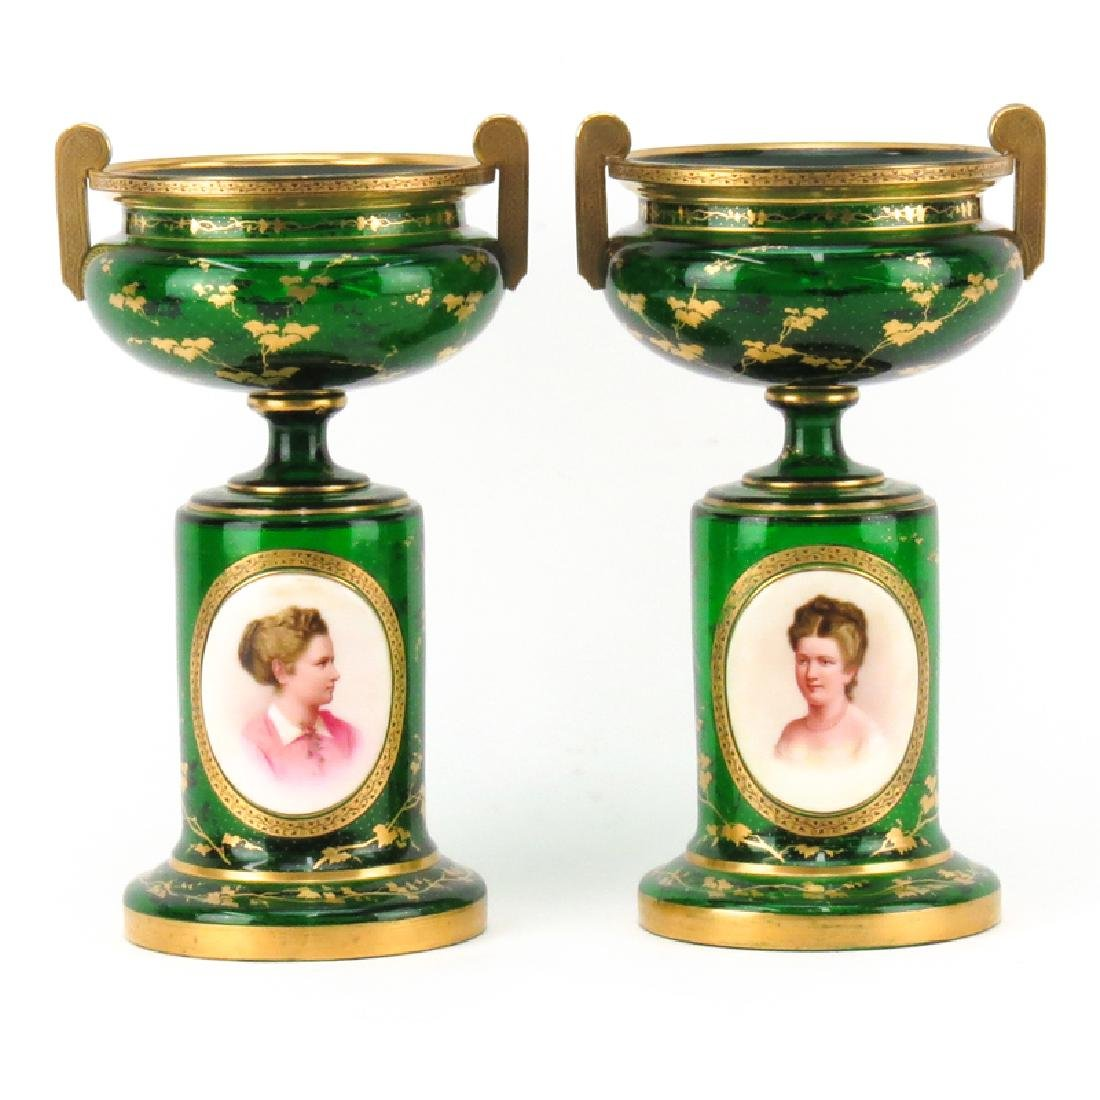 Pair of 19th Century Bohemian Emerald Green and Gilt